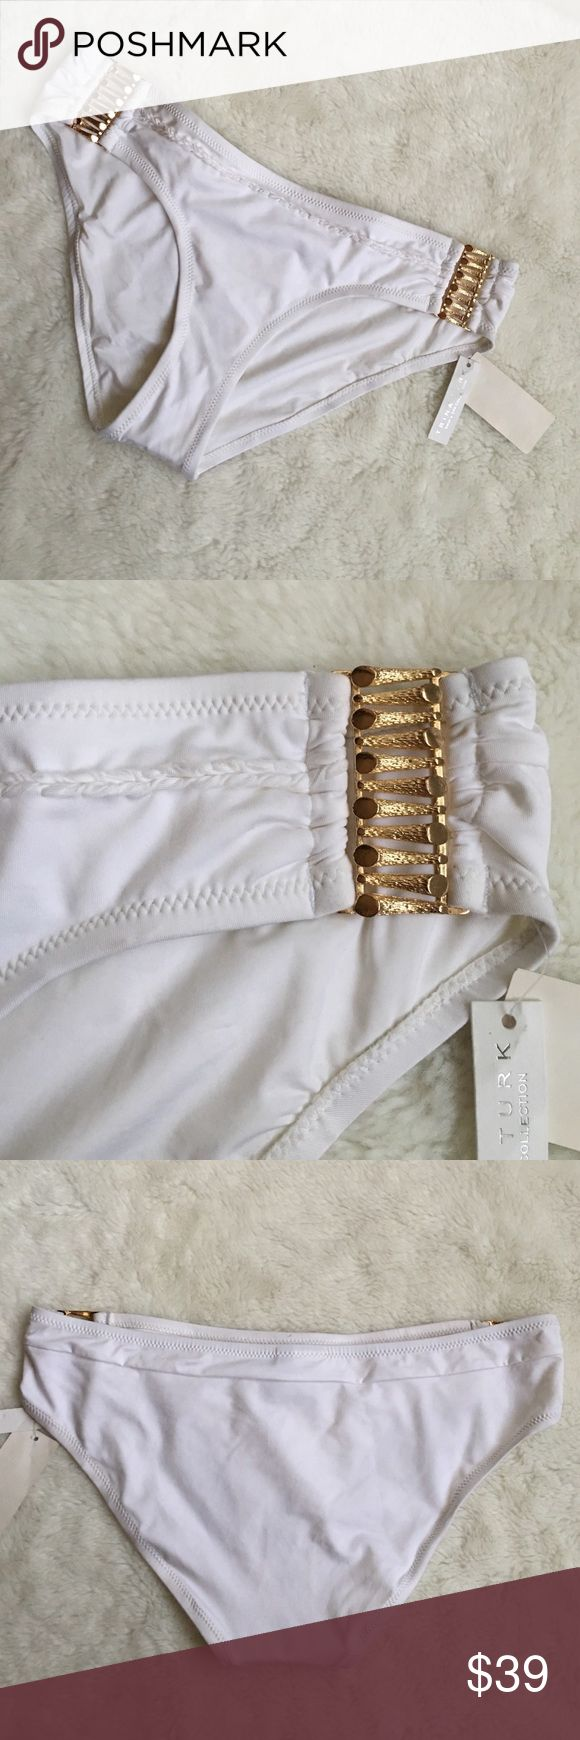 Trina Turk White with Gold Bikini Bottoms size 10 New Trina Turk White with Gold Bikini Bottoms size 10. Please look at pictures for better reference. Happy shopping!! CF Trina Turk Swim Bikinis